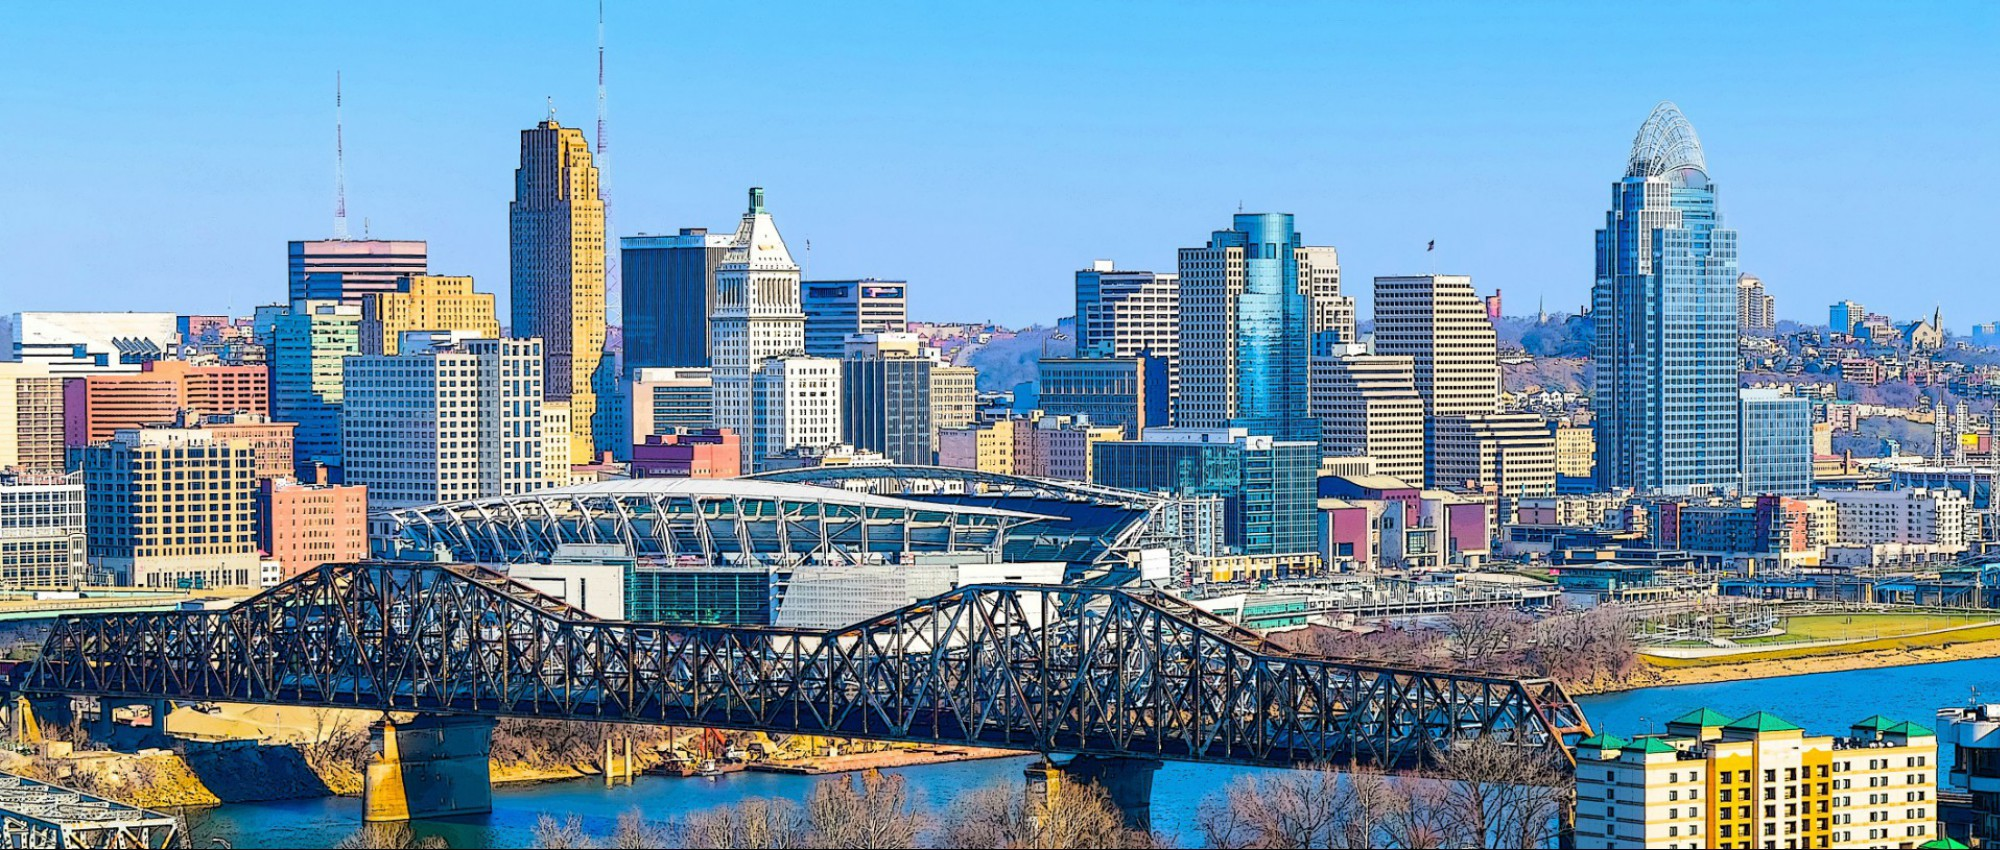 Cincinnati Image Source https://www.cincinnatioralsurgery.com/files/2018/06/shutterstock_1051445450-2000x814.jpg